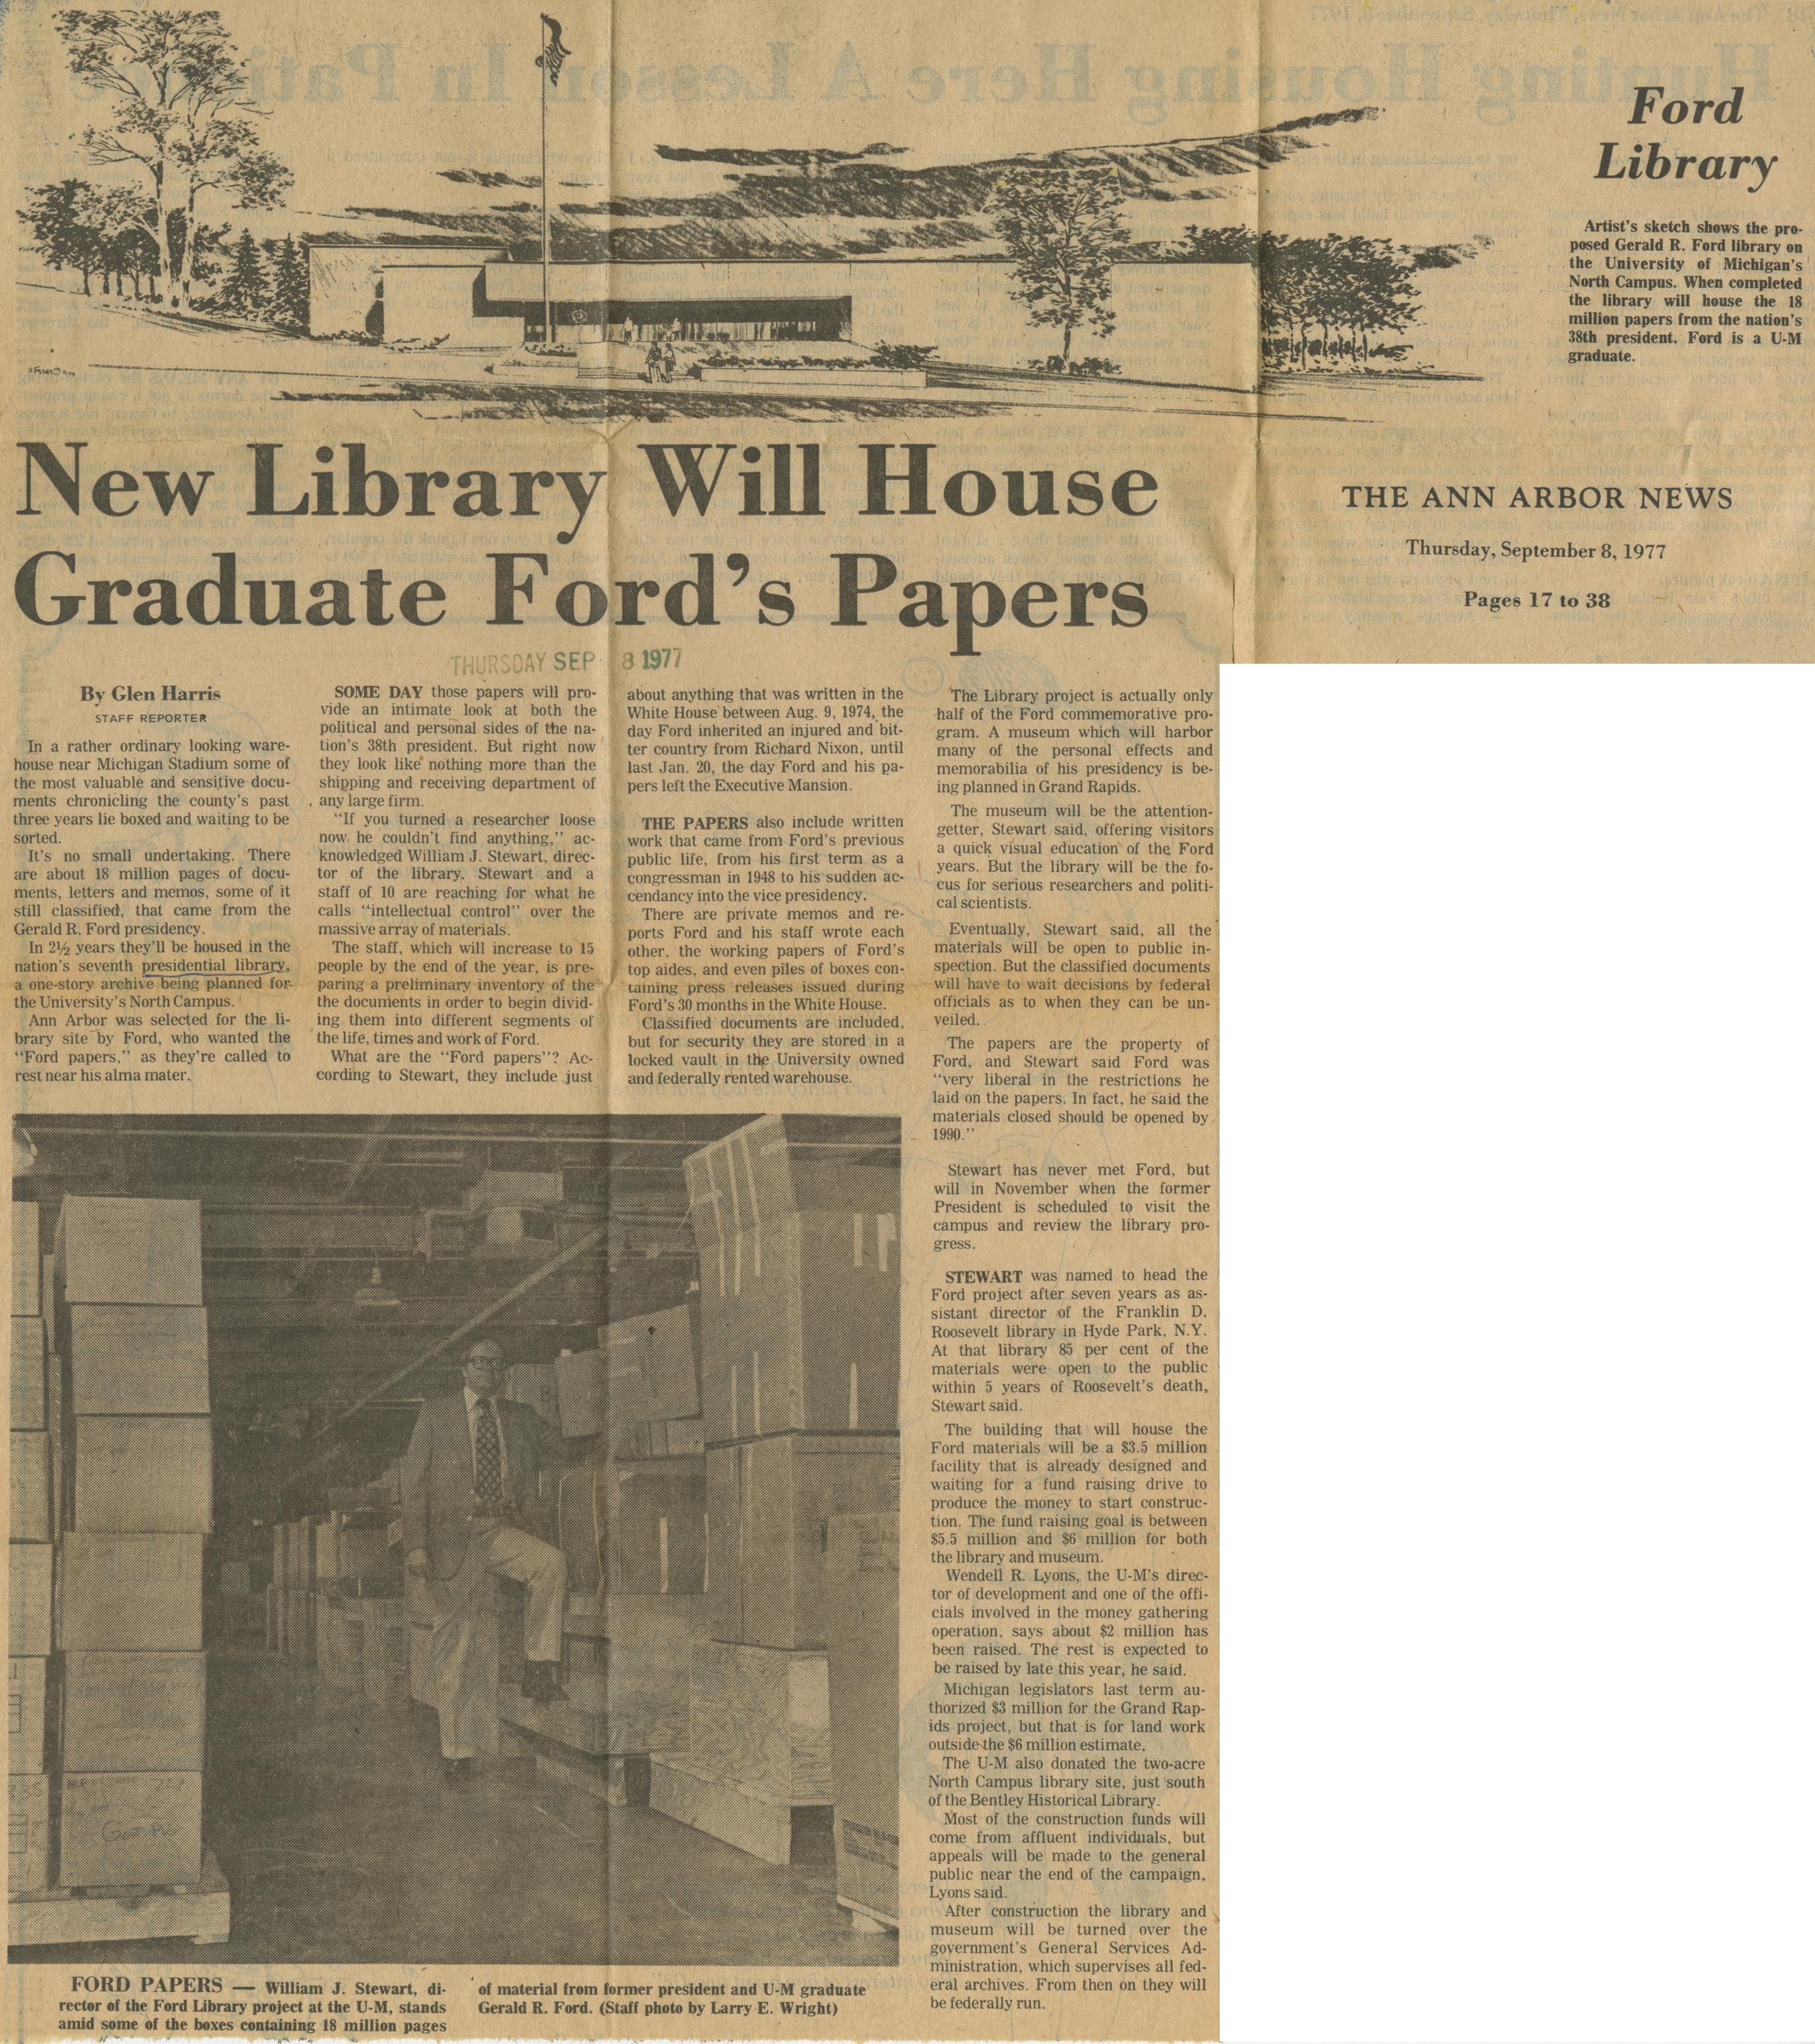 New Library Will House Graduate Ford's Papers image